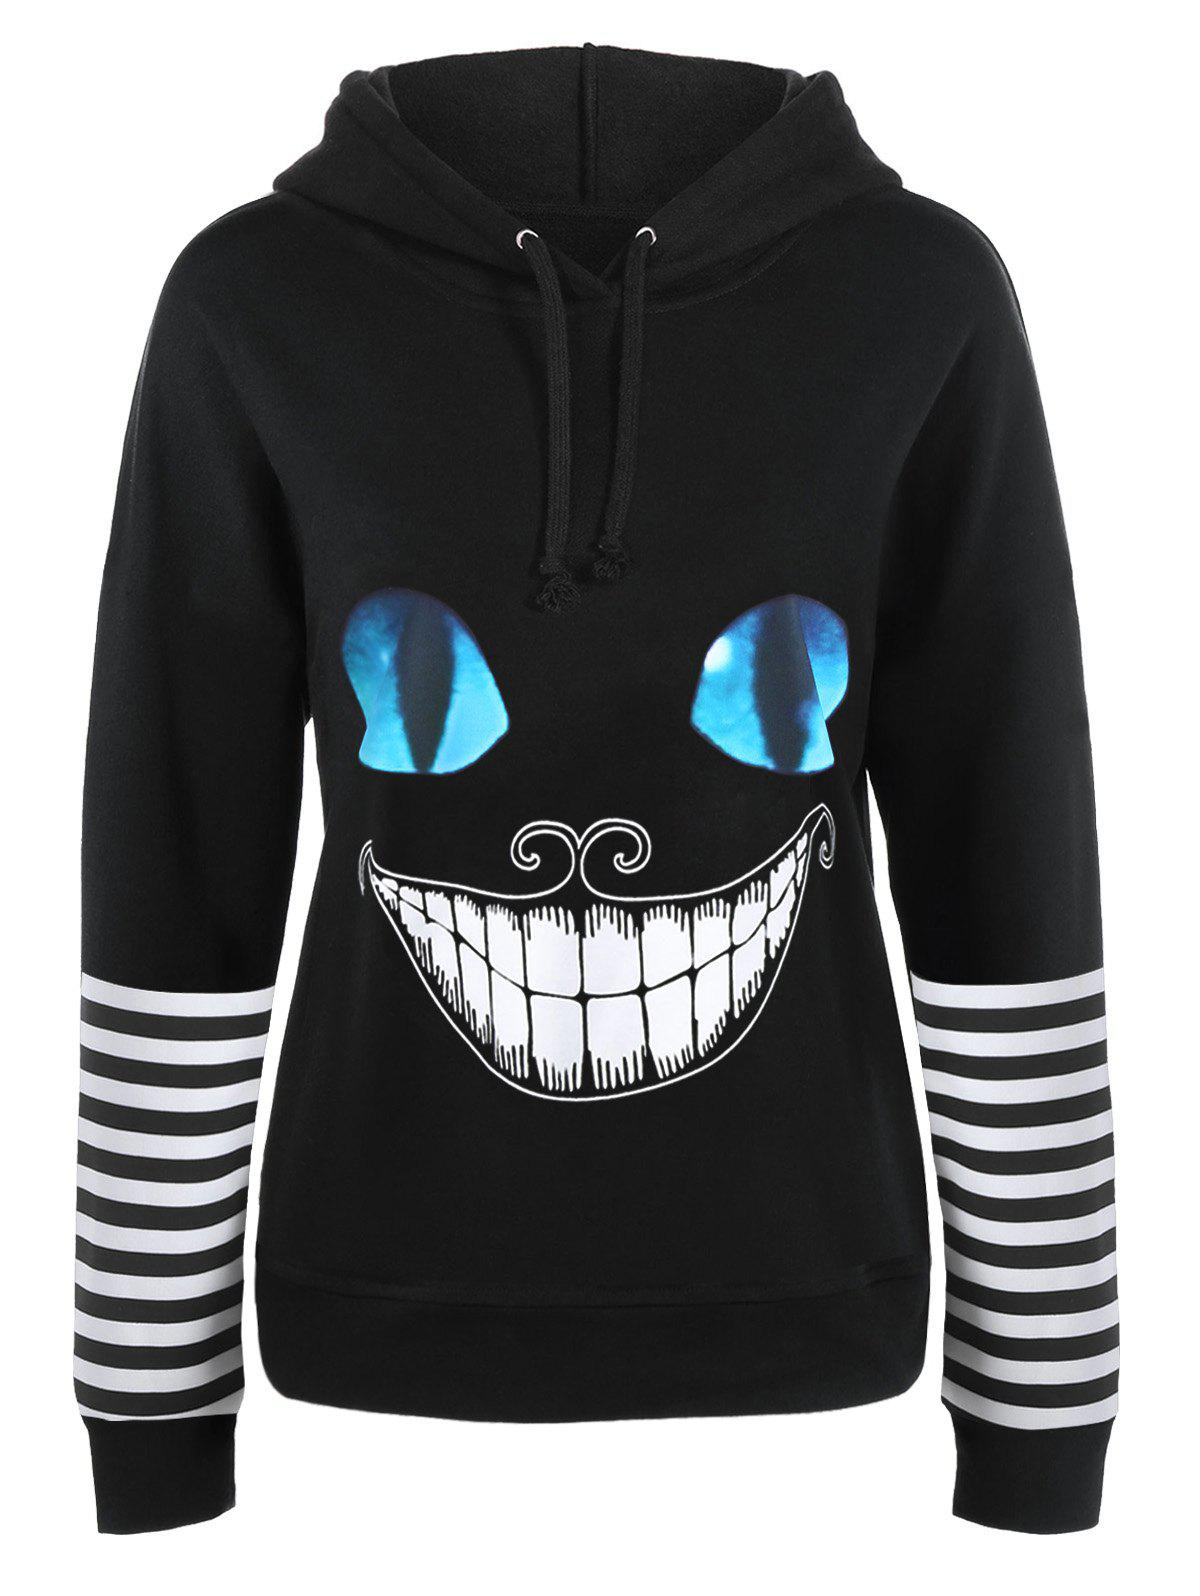 Halloween Cat Face Print Drawstring HoodieWOMEN<br><br>Size: L; Color: BLACK; Material: Polyester; Shirt Length: Regular; Sleeve Length: Full; Style: Fashion; Pattern Style: Print; Embellishment: Panel; Elasticity: Micro-elastic; Season: Fall,Spring,Winter; Weight: 0.4900kg; Package Contents: 1 x Hoodie;